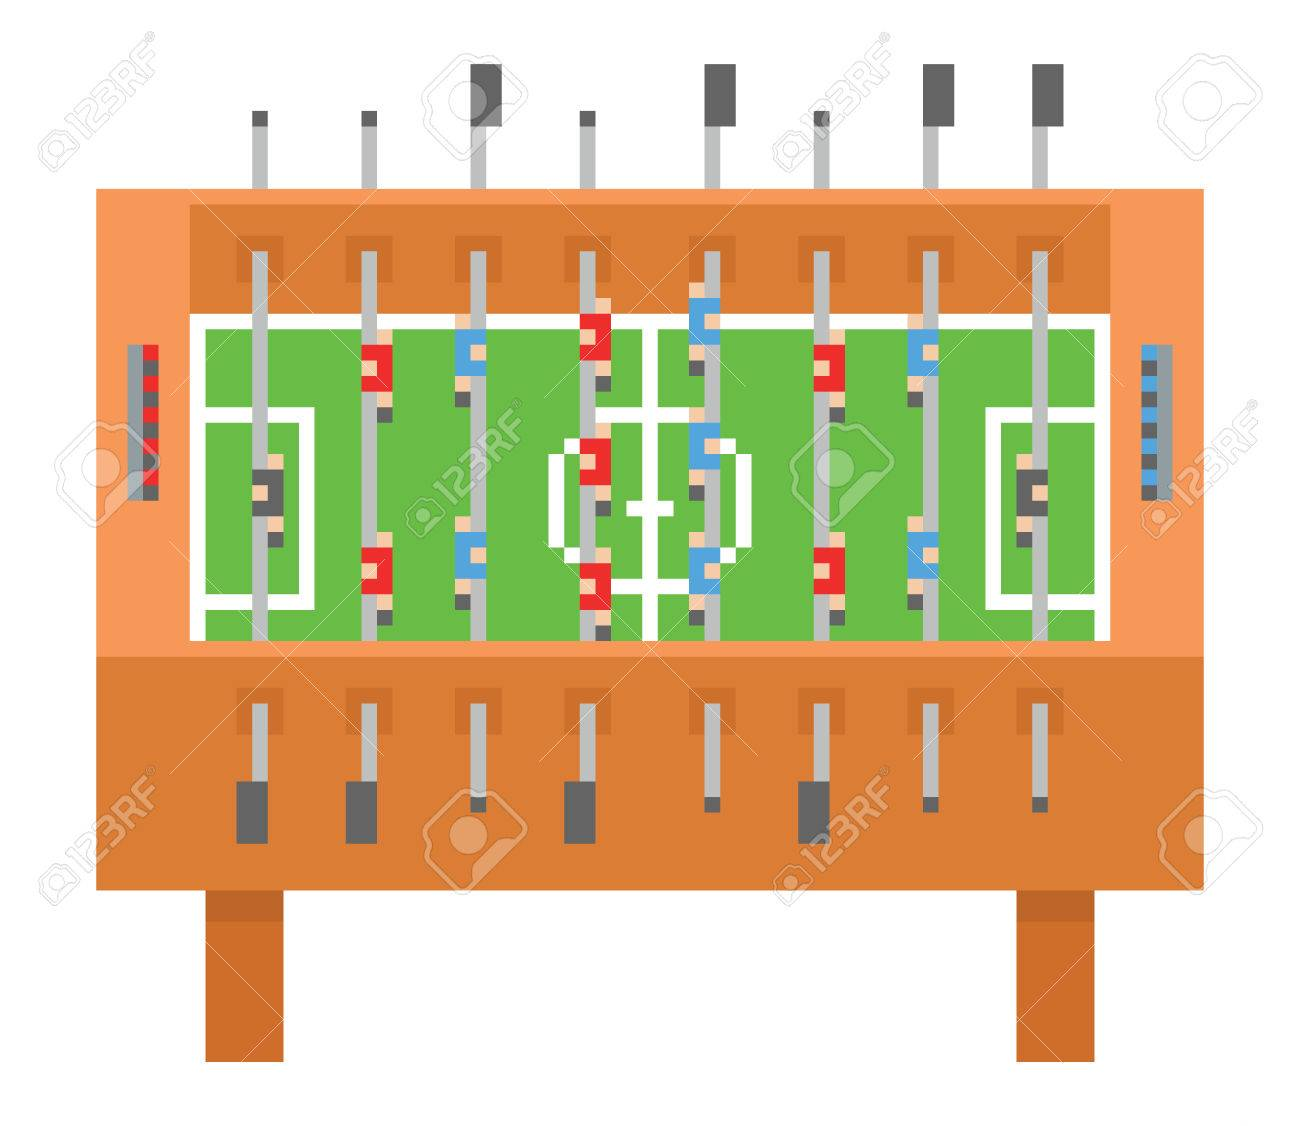 Table Soccer Pixel Art Vector Illustration Kicker Bar Football